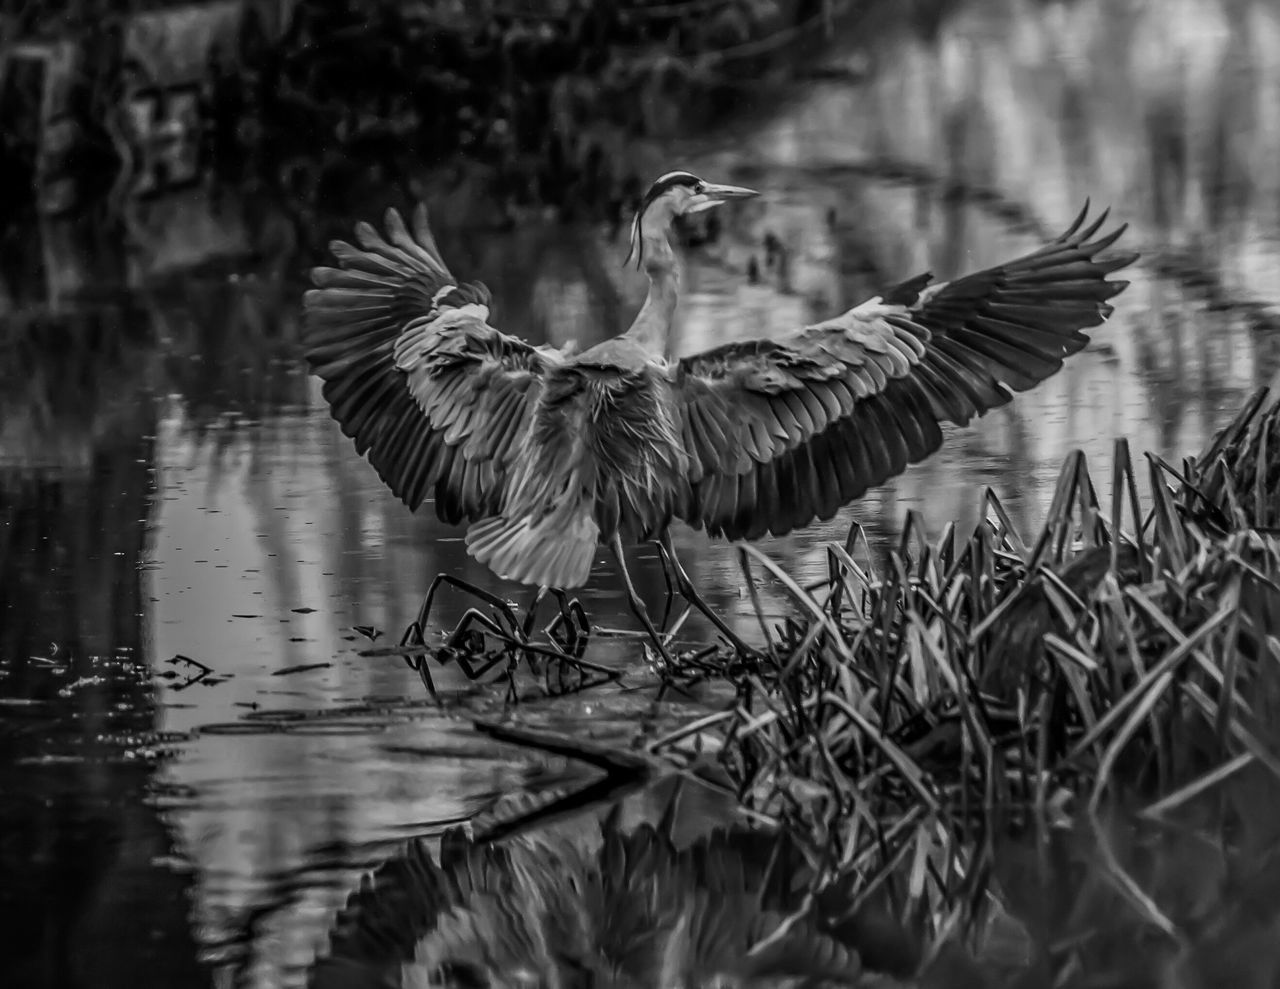 bird, animal themes, one animal, spread wings, animals in the wild, animal wildlife, nature, outdoors, day, lake, no people, water, full length, beauty in nature, close-up